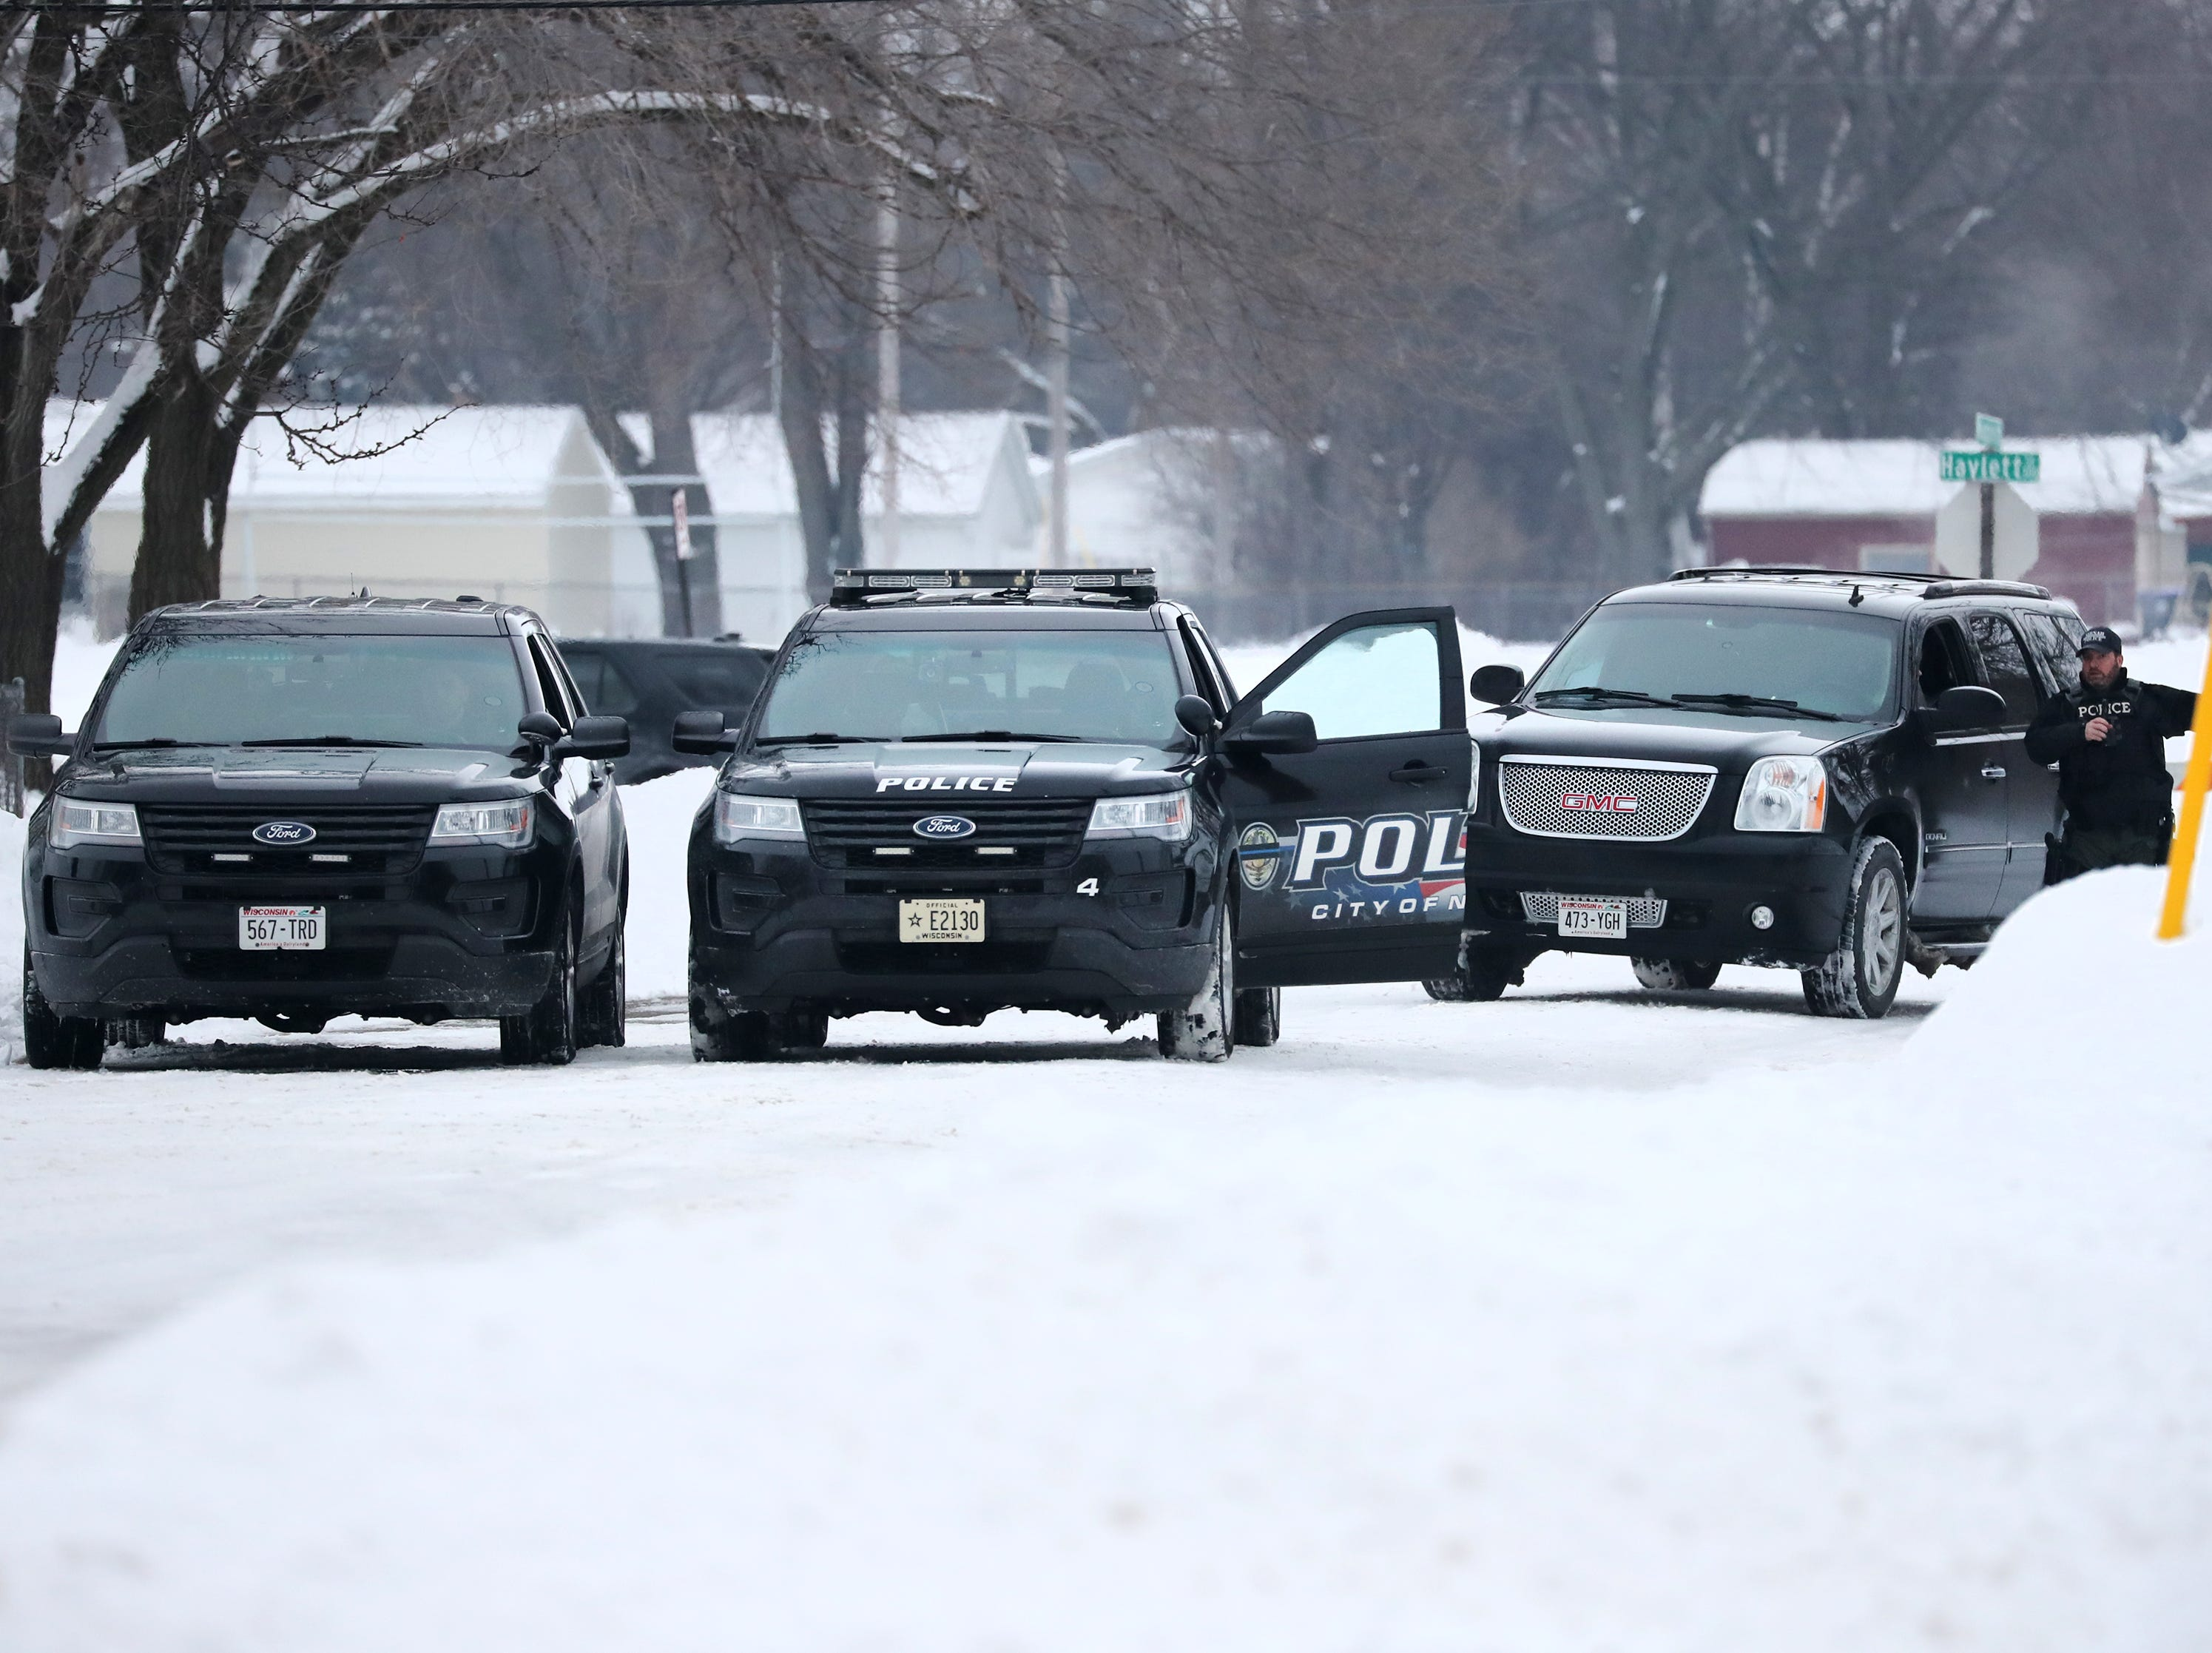 A Neenah police officer directs a vehicle during an active police incident involving an armed man who barricaded himself inside a home on the 400 block of Quarry Lane Thursday, Feb. 14, 2019, in Neenah, Wis.Danny Damiani/USA TODAY NETWORK-Wisconsin